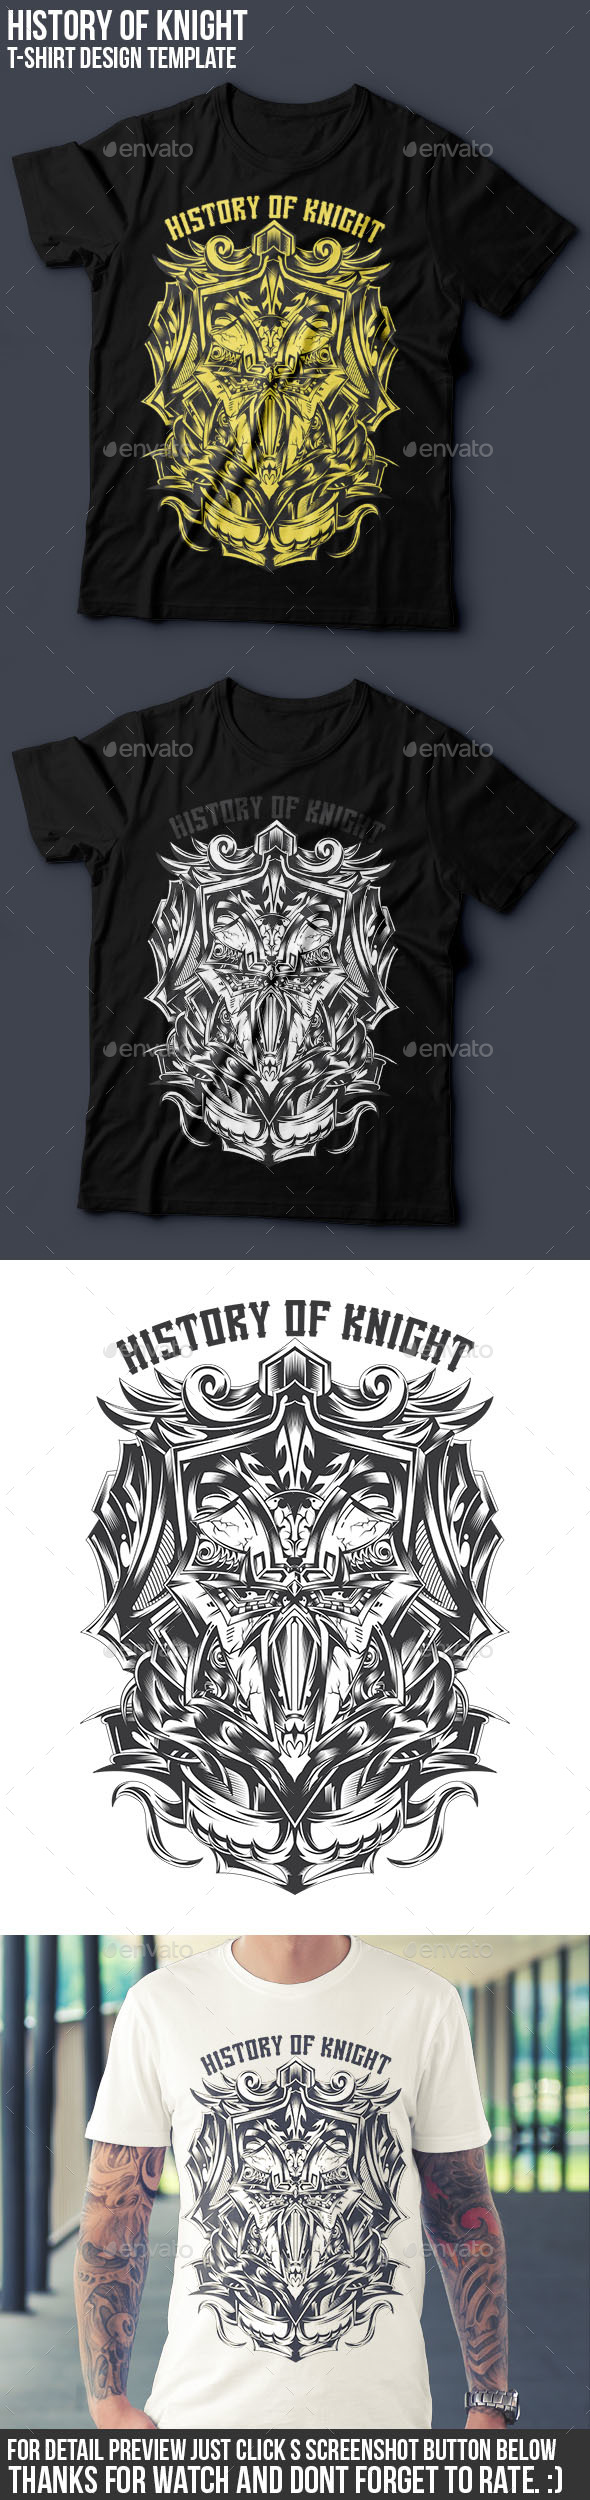 History of Knight T-shirt Design - Clean Designs